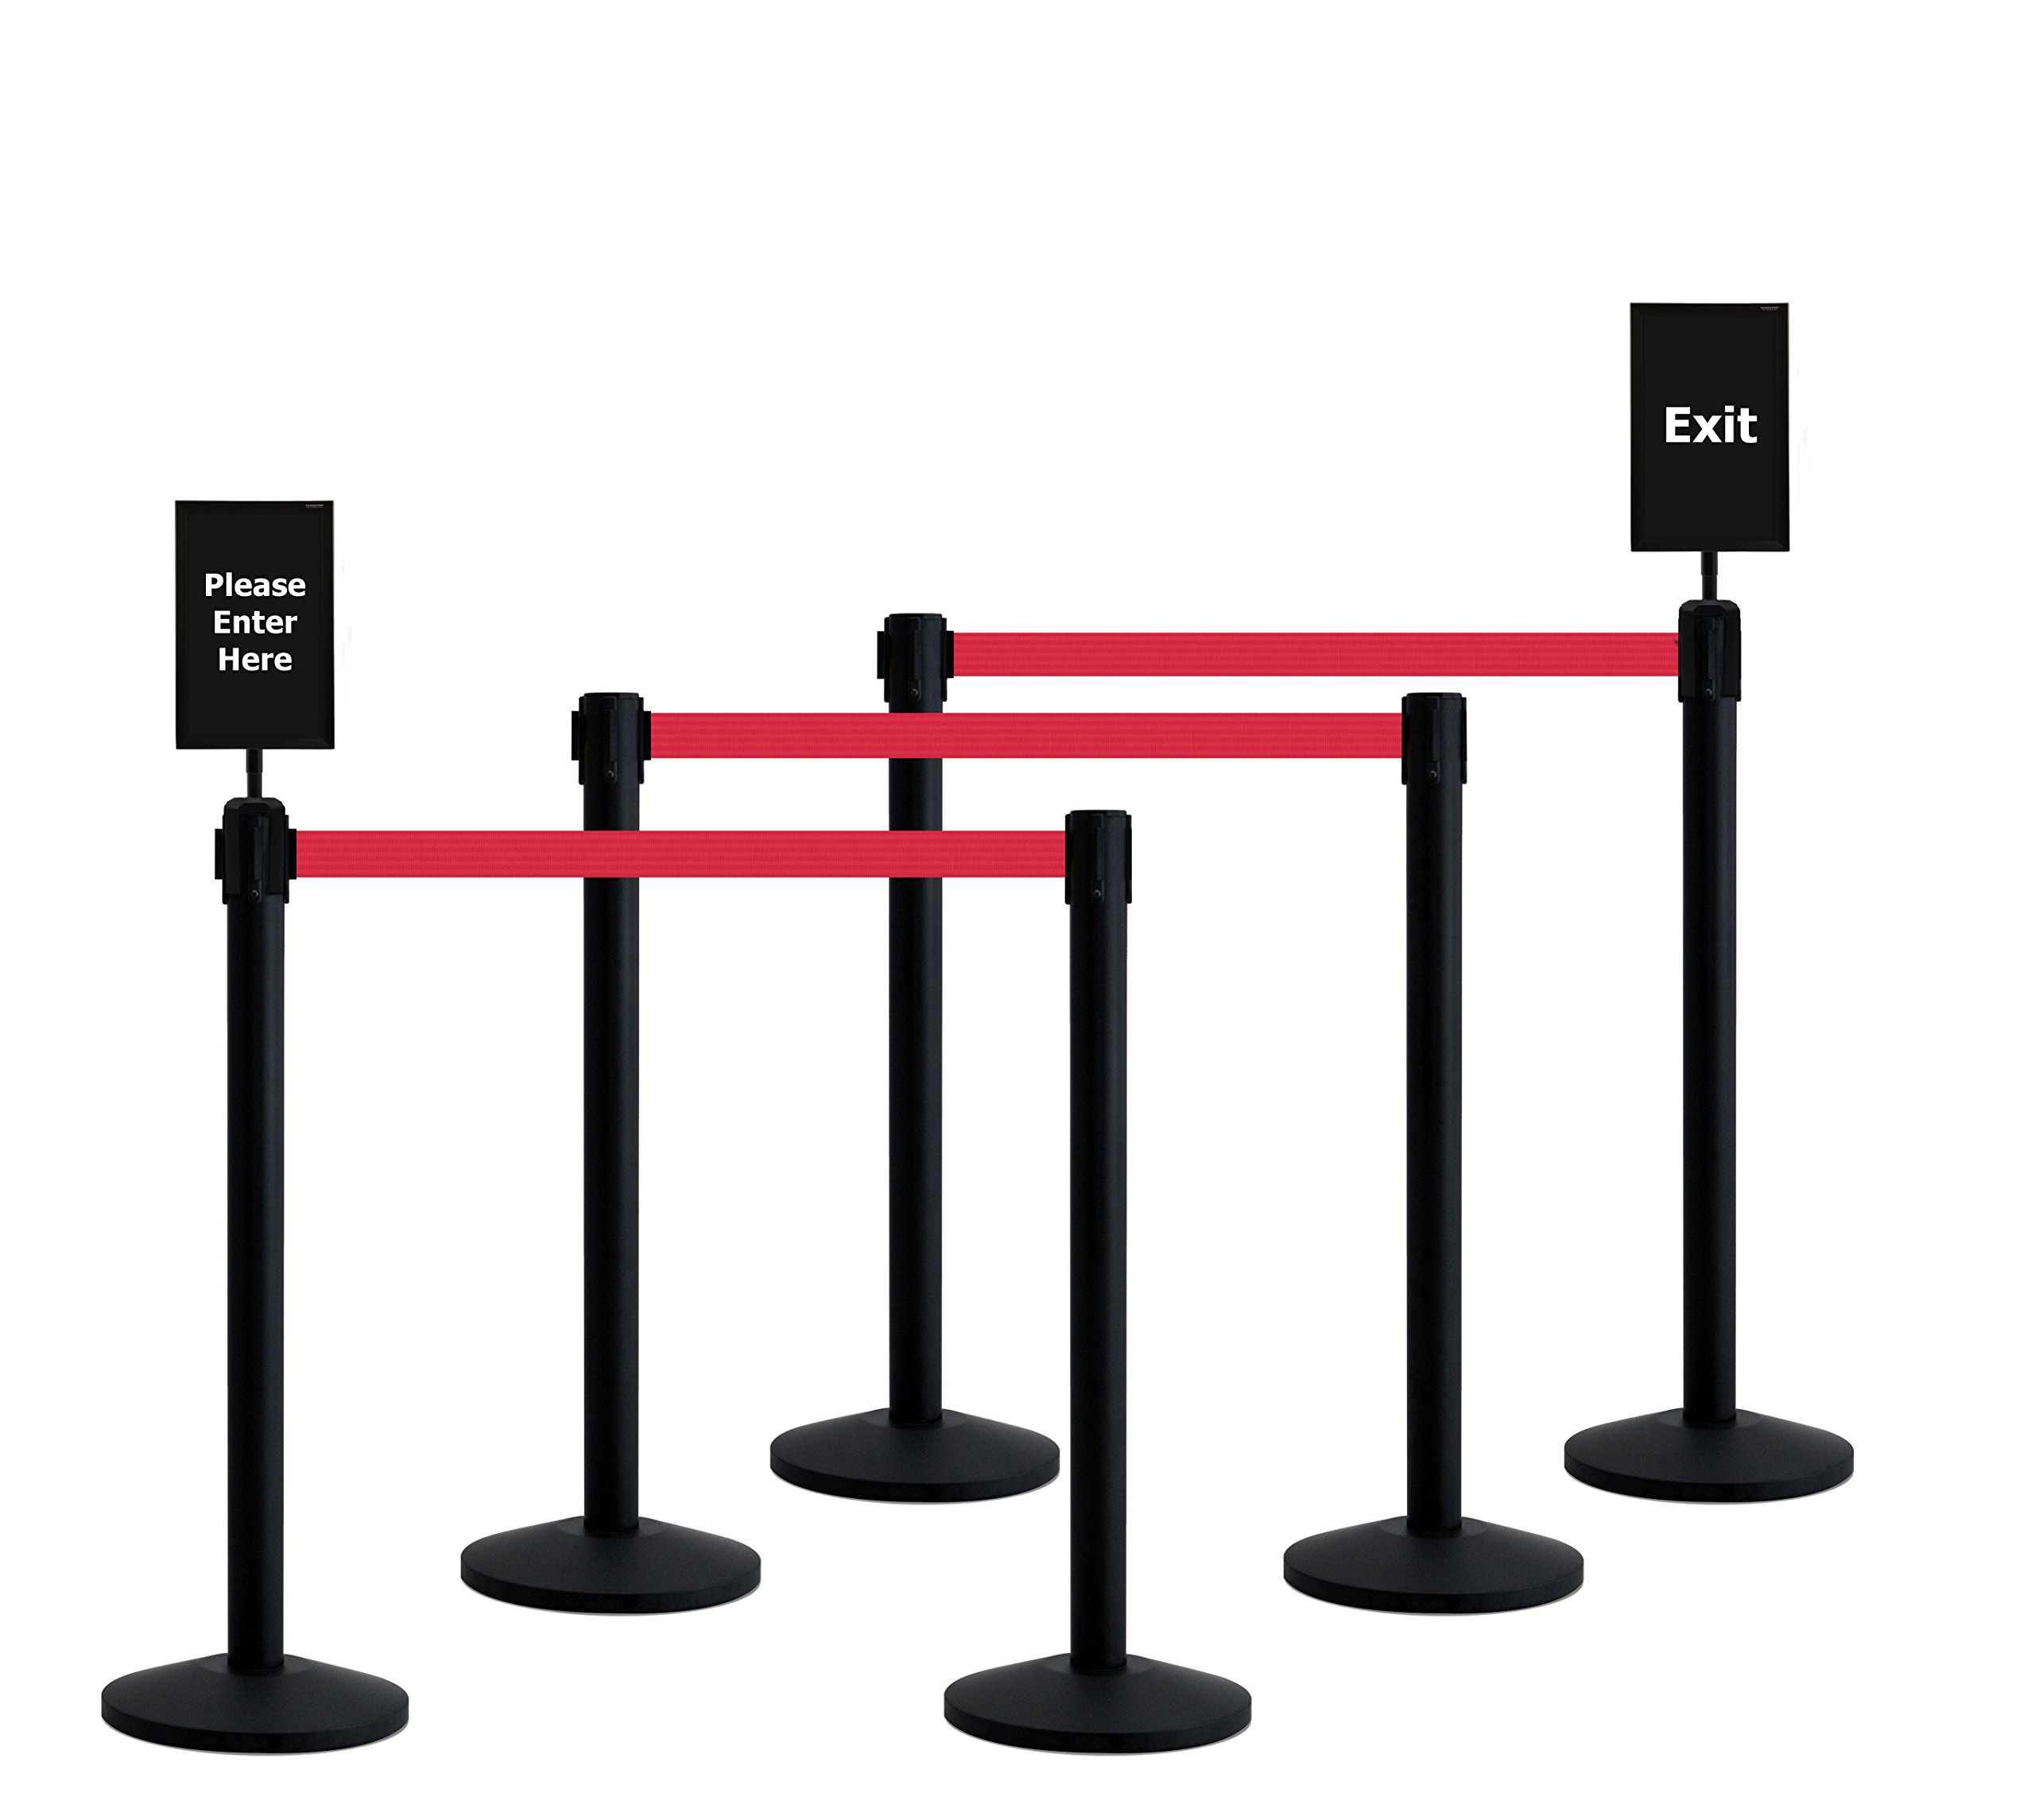 Queueway Crowd Control Retractable Belt Stanchion 6-Pack Kit with Signs USA Made (Red Webbing)